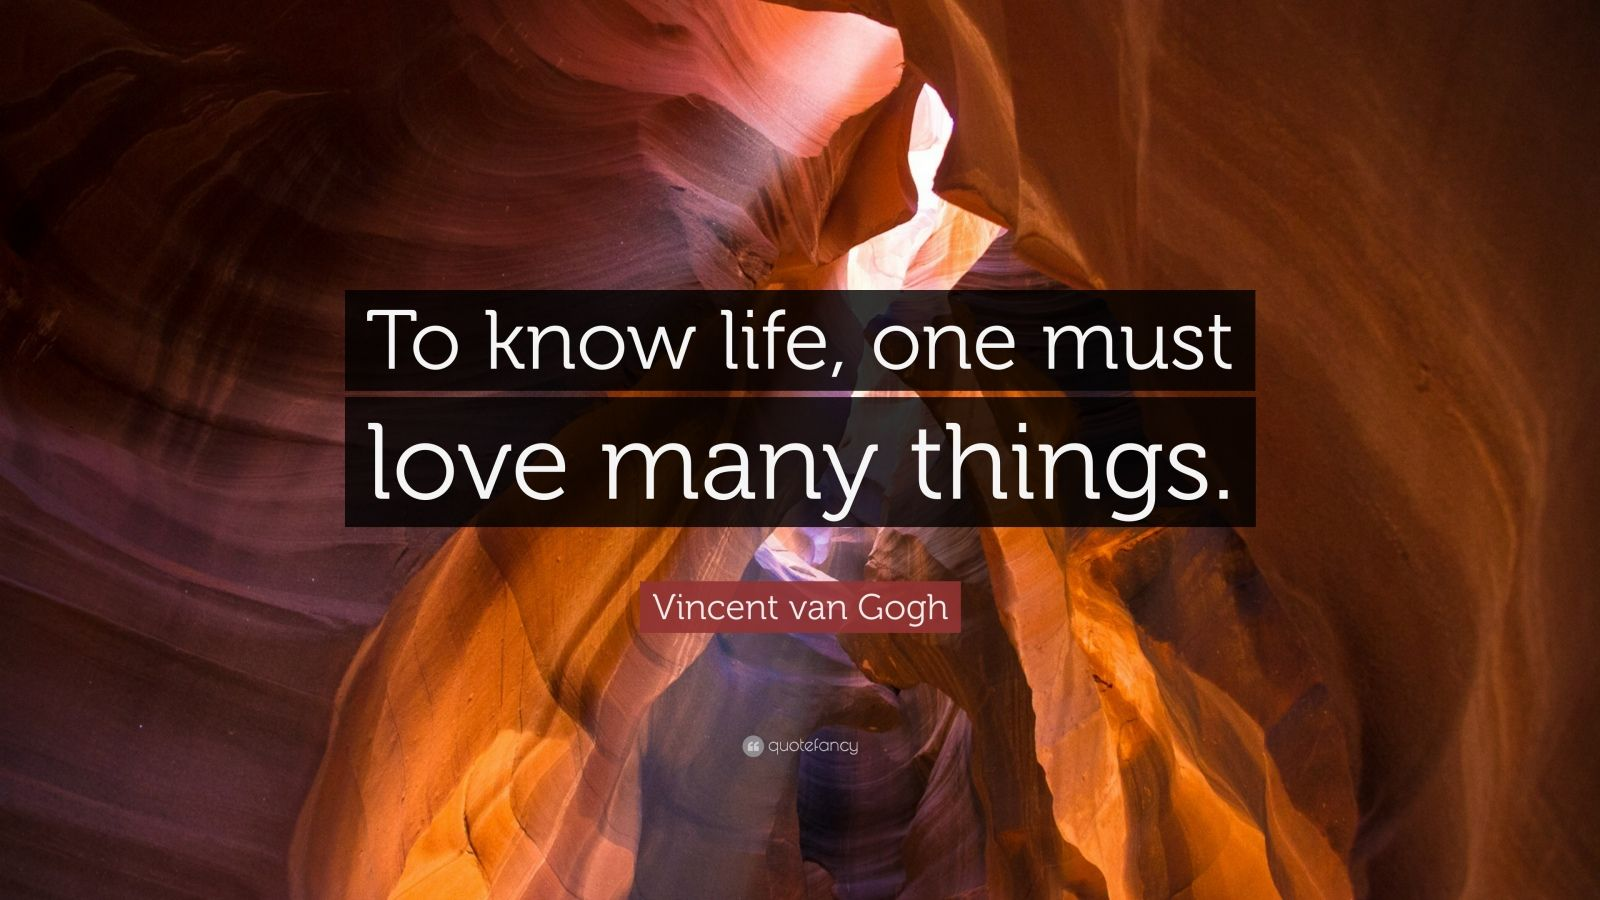 """Vincent Van Gogh Quotes: """"To know life, one must love many things."""" — Vincent van Gogh"""